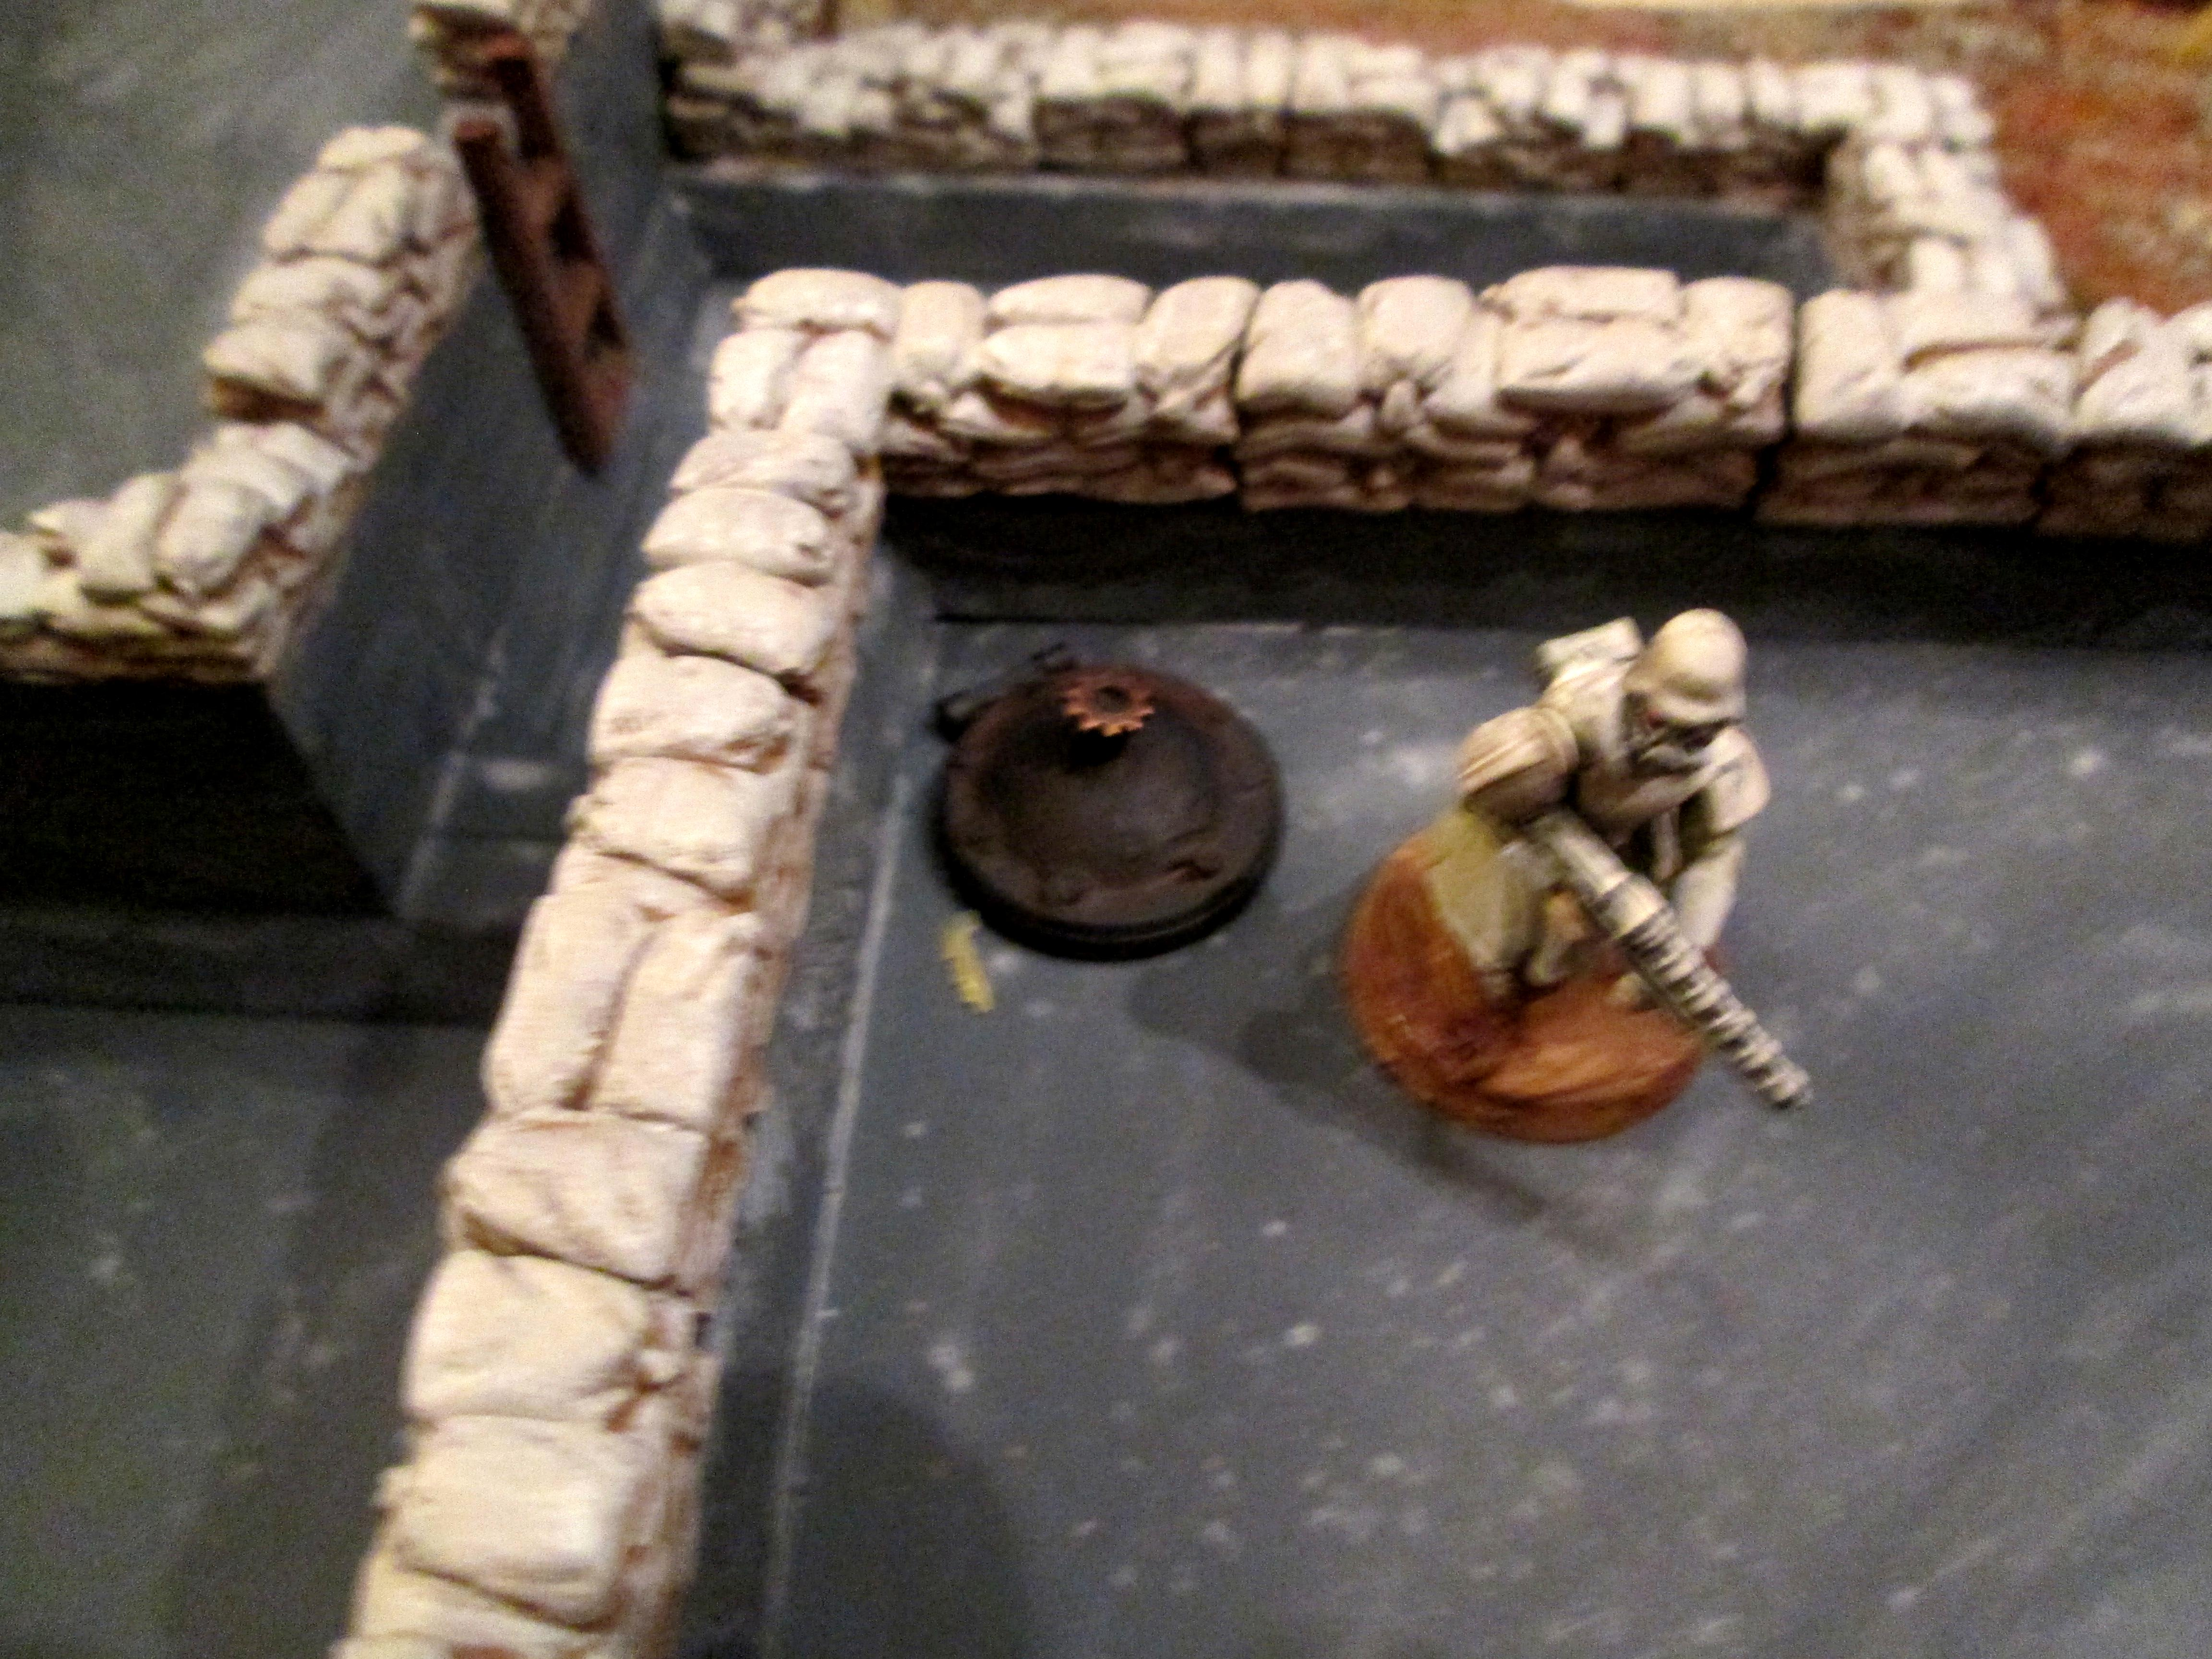 Hatches, Imperial Guard, Orks, Scratch Build